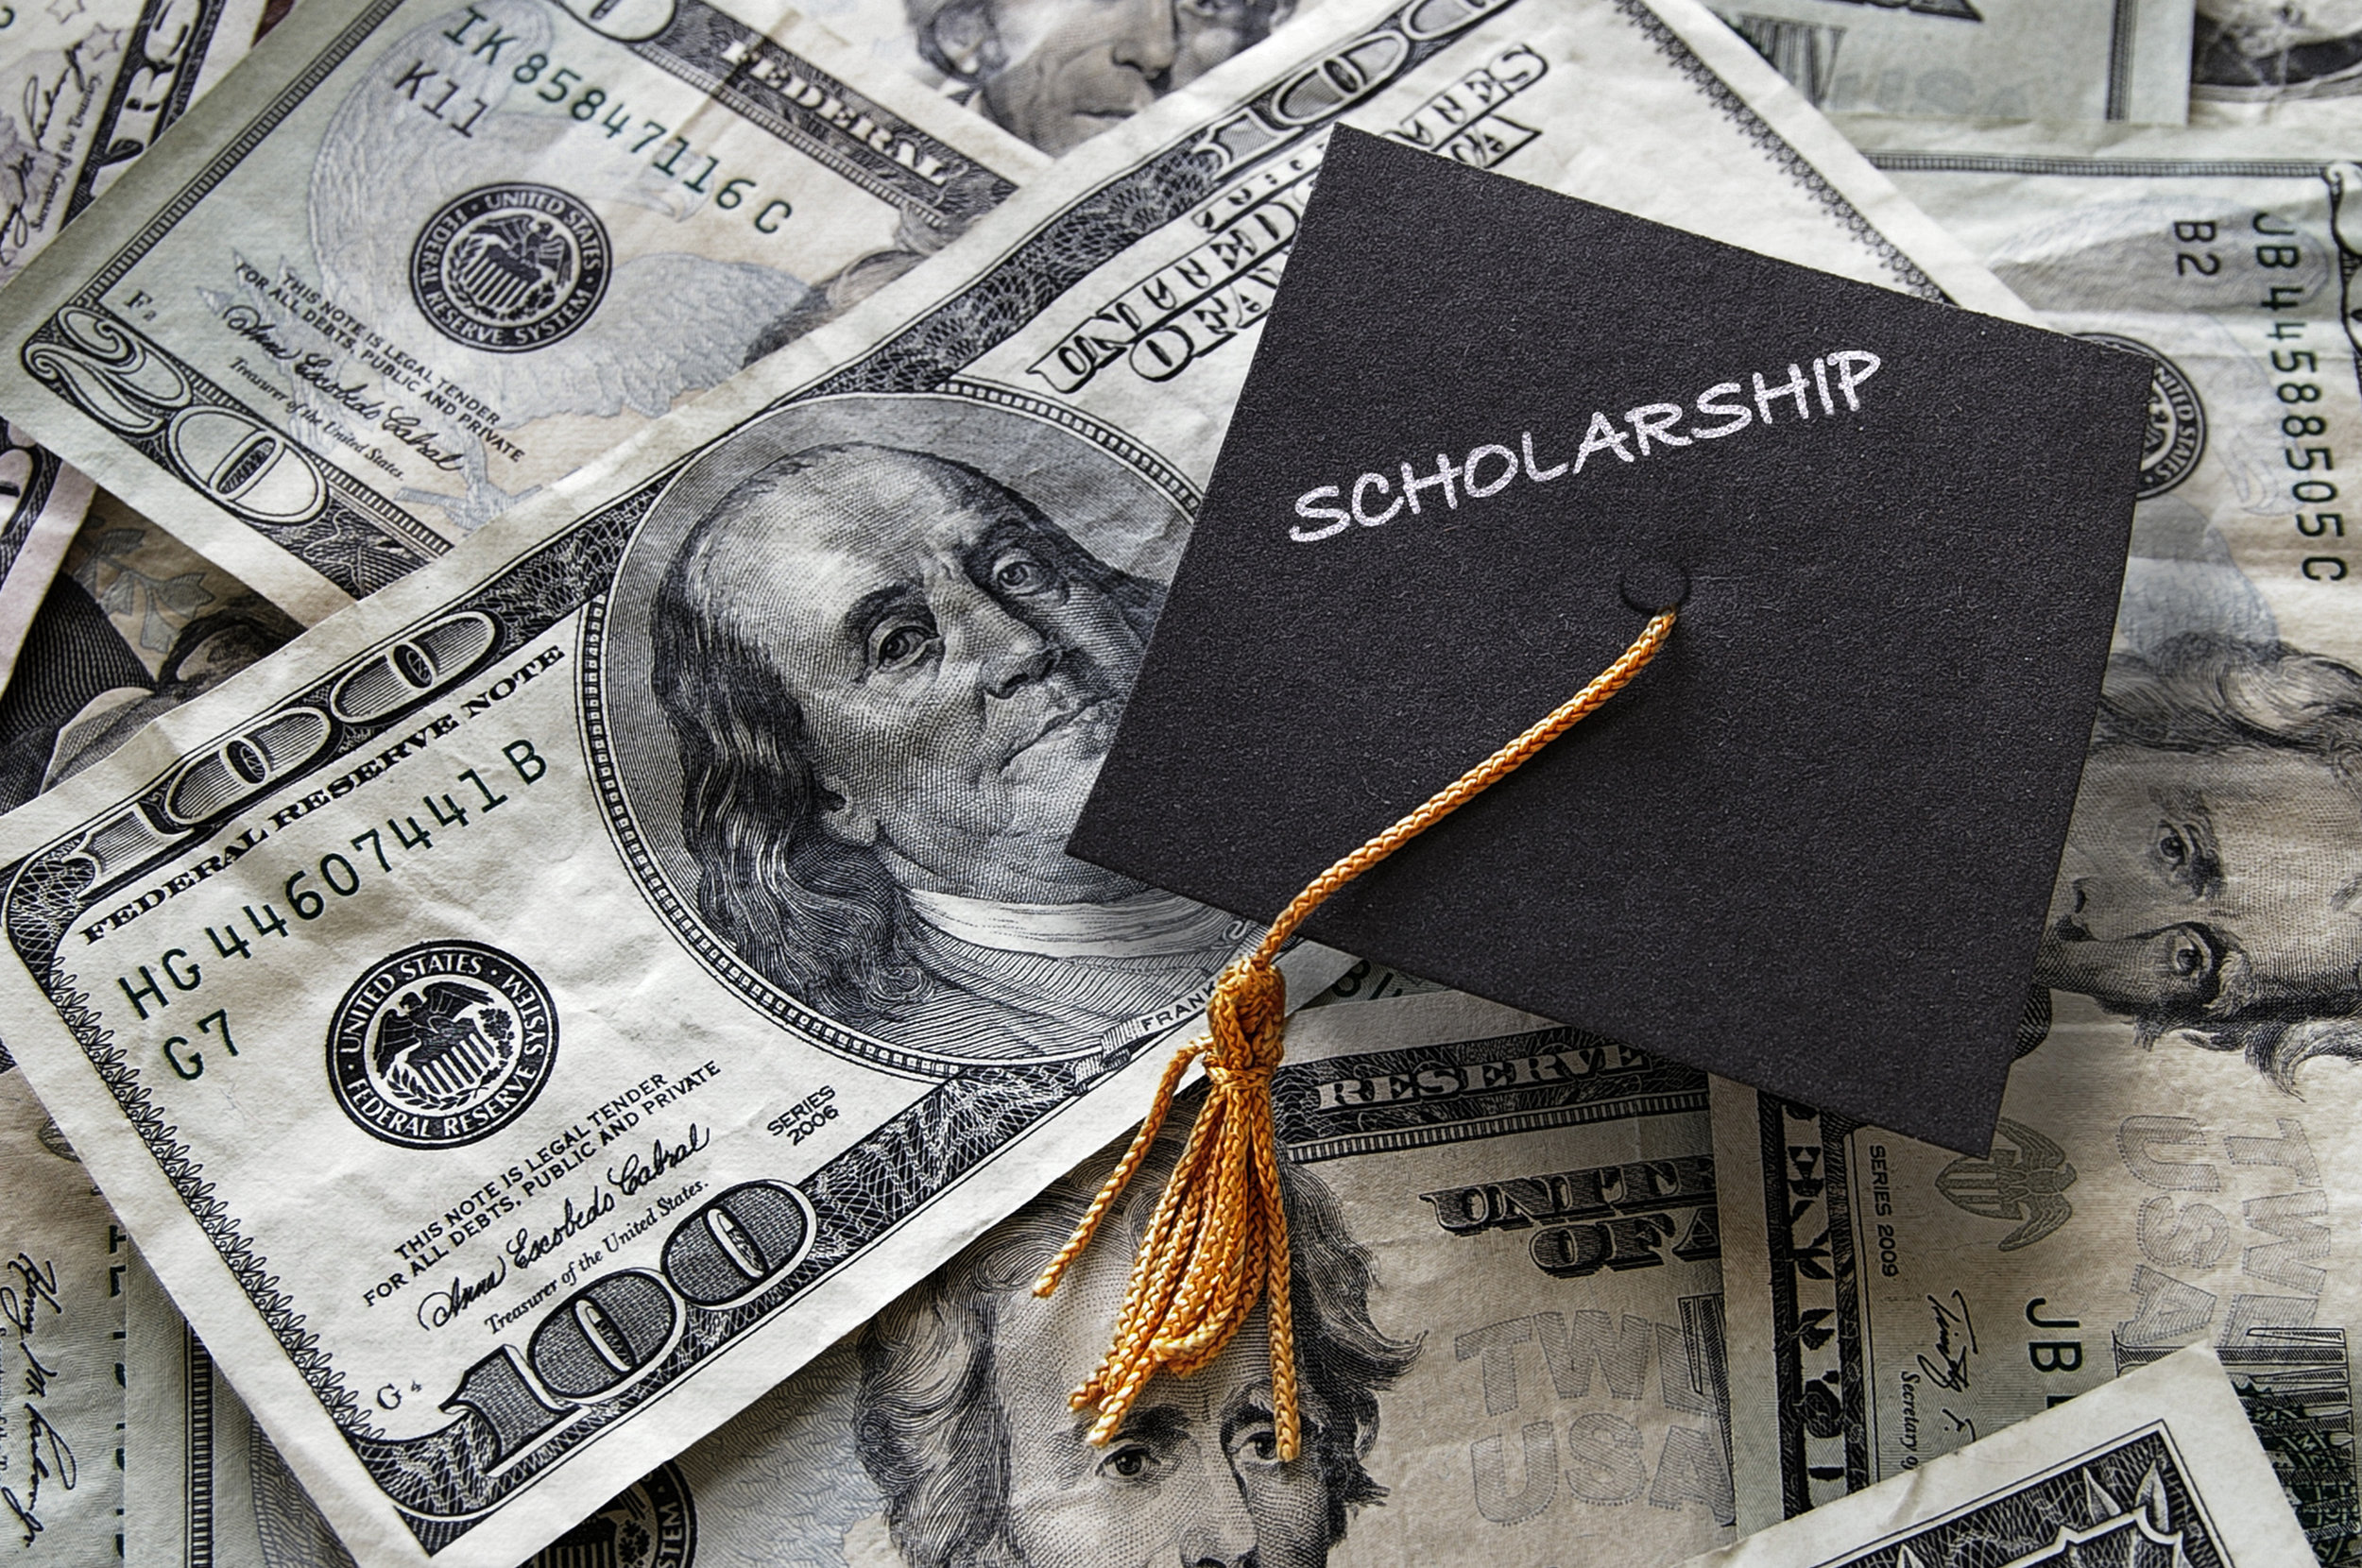 Paying for college is expensive, and for many, the rising cost of higher education keeps them from attaining a degree. While the Krimson and Kreme Foundation offers scholarships to the young people in our program, there are millions of dollars available to help students pursuing their education. These listings will be updated often, so please check back for new scholarship opportunities.